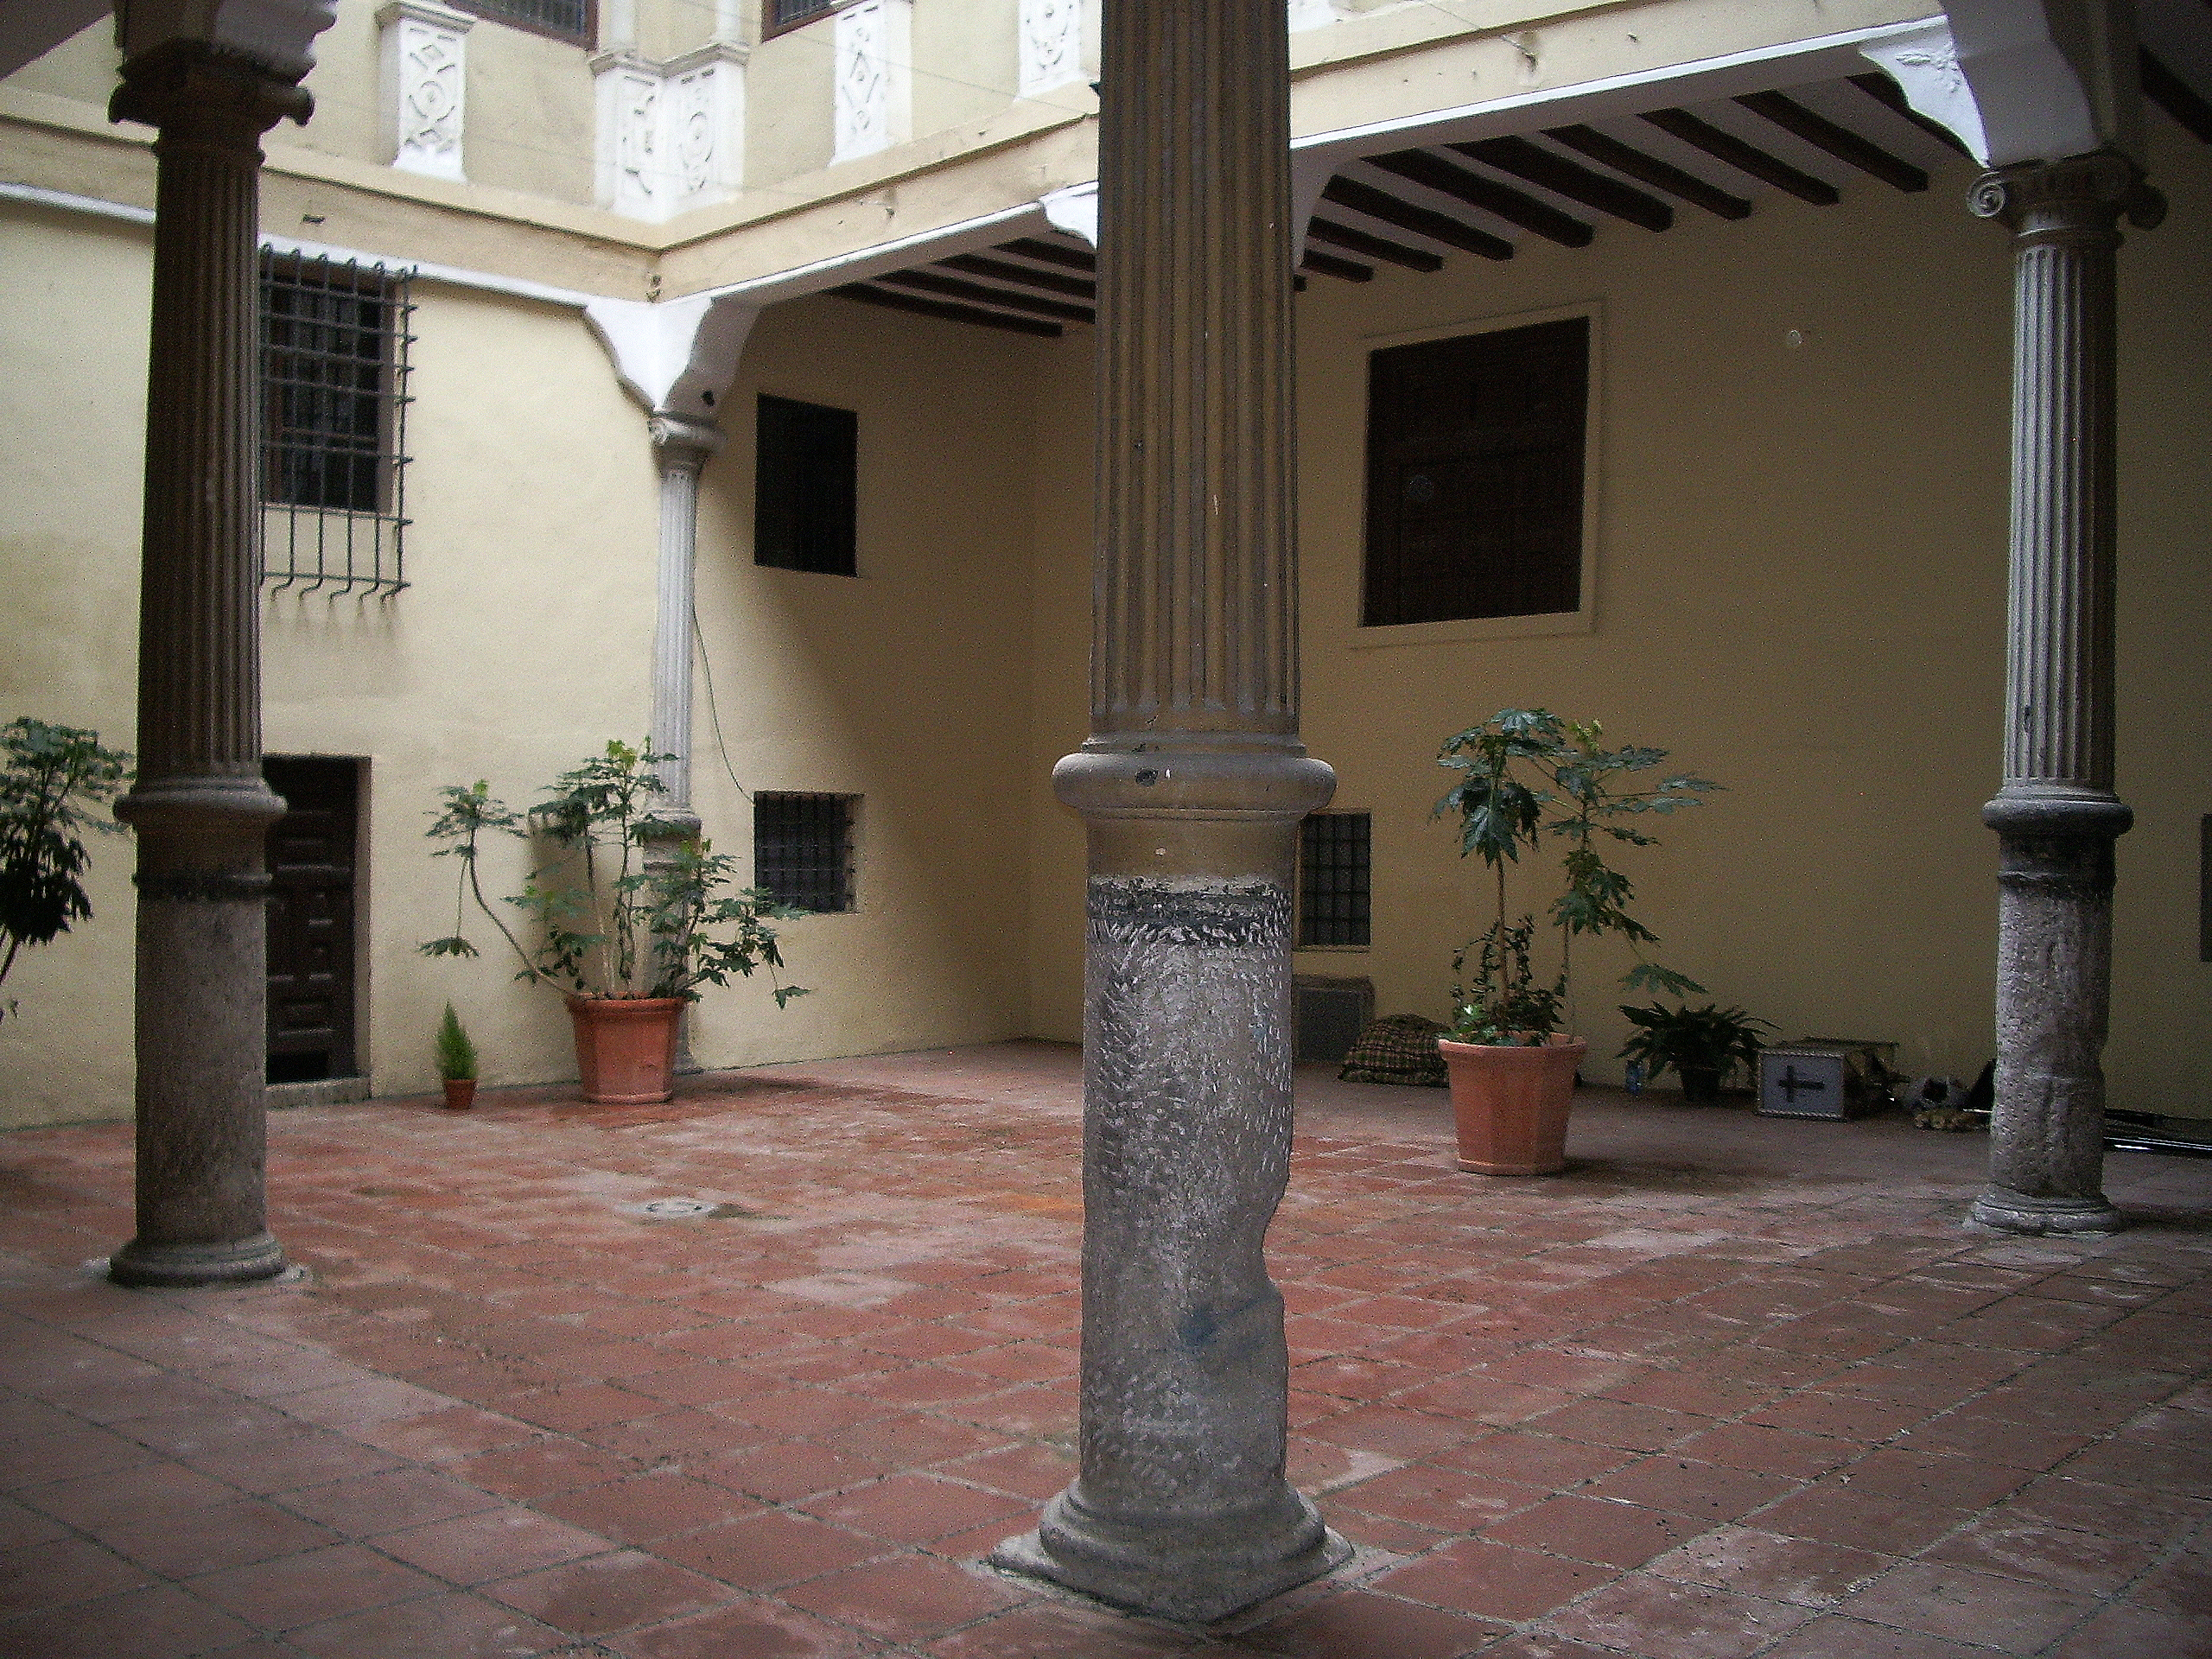 File patio casa de miguel wikimedia commons - Patios de casas ...